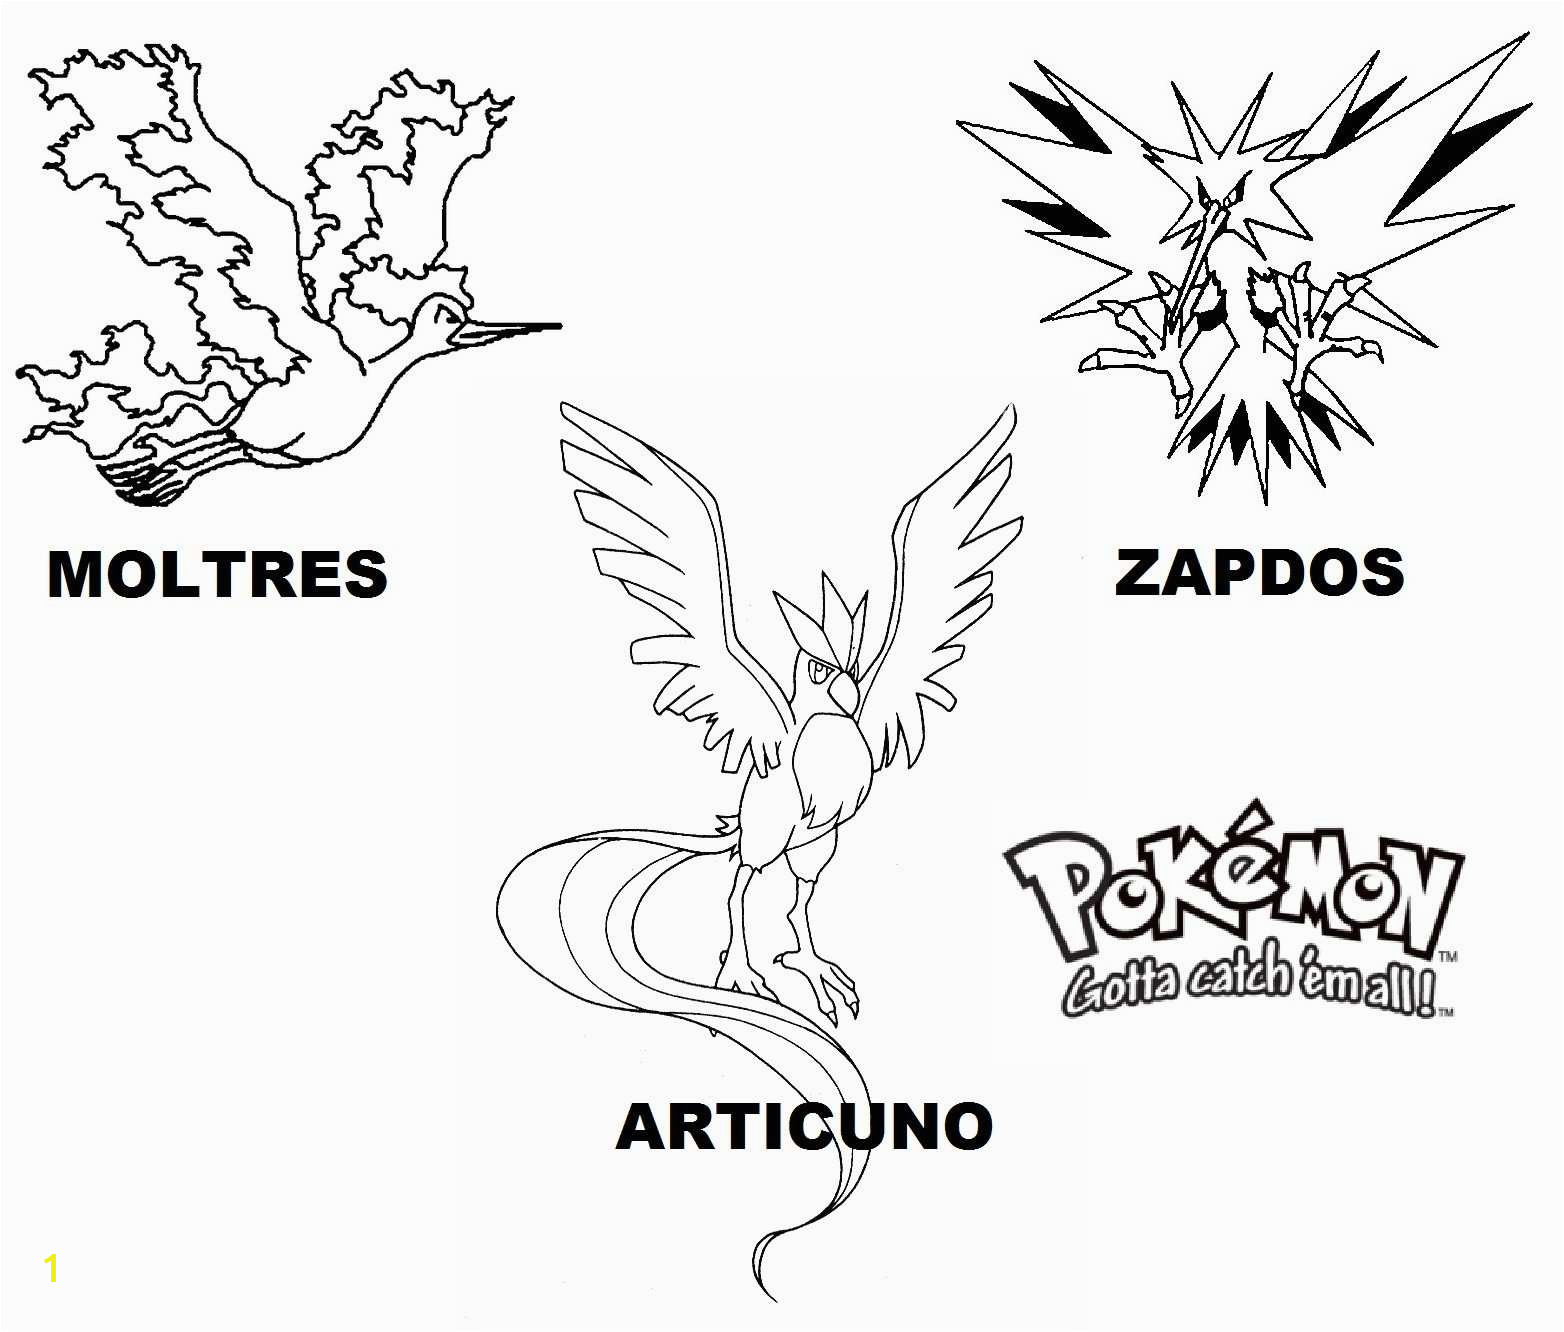 Moltres Coloring Pages Elegant All Legendary Pokemon Coloring Pages Pokemon Coloring Pages for Kids